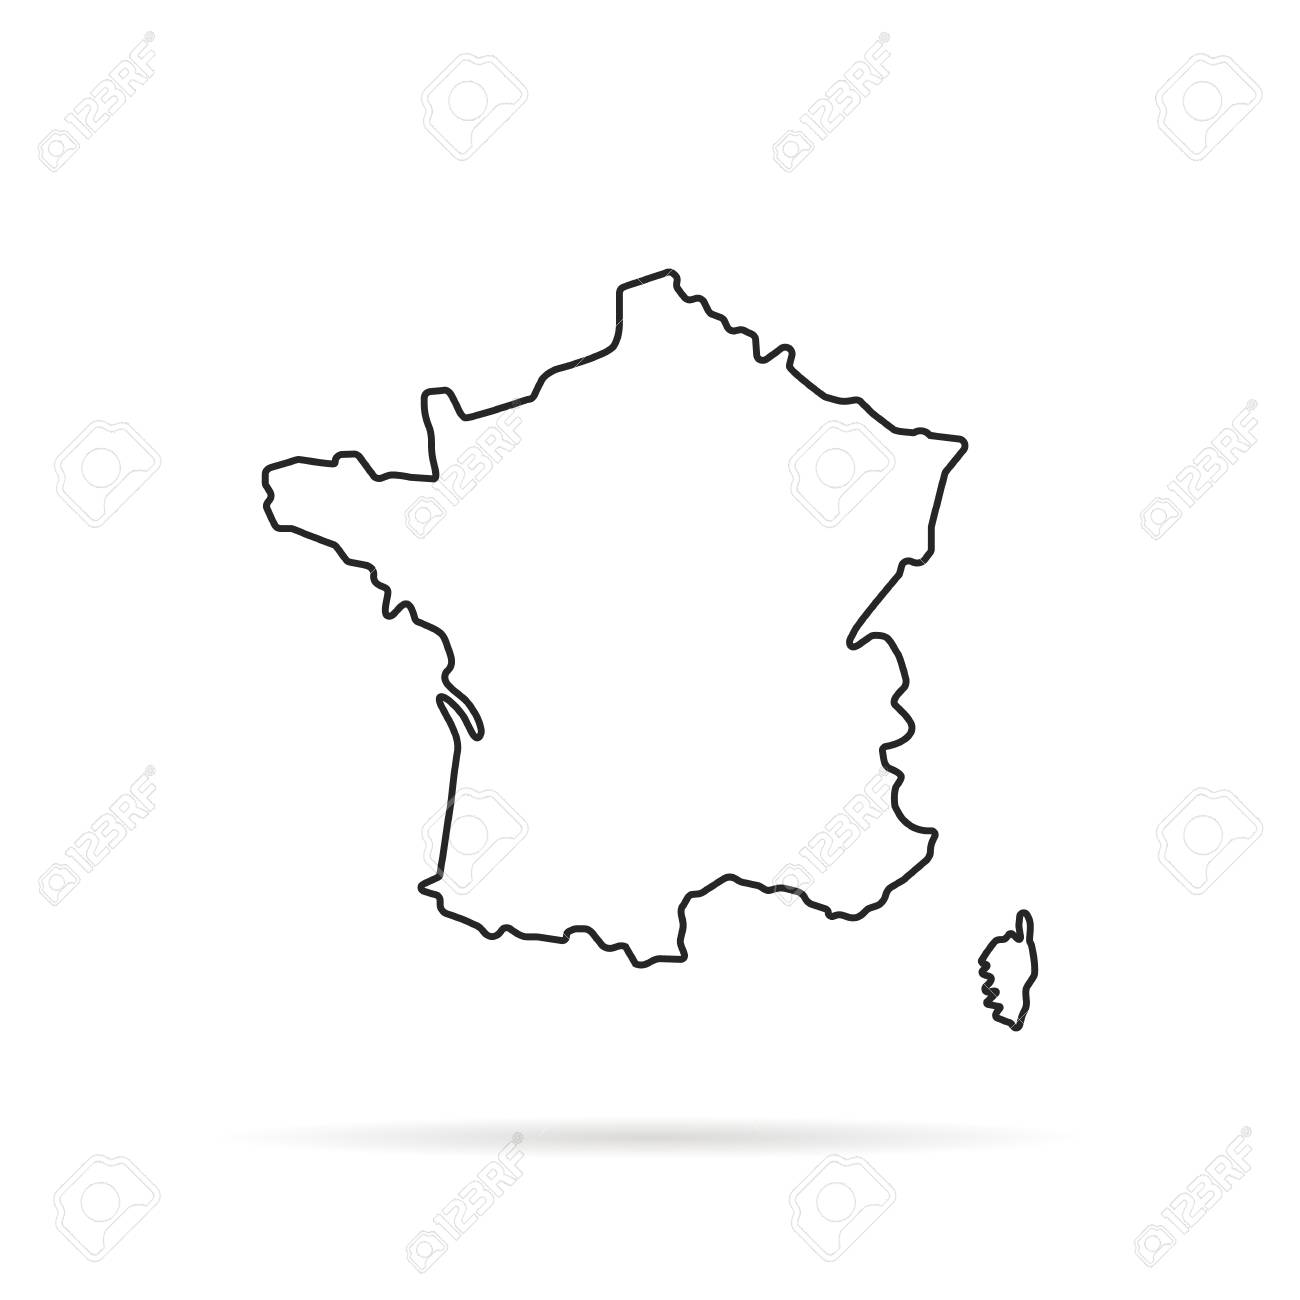 Map Of France Drawing.Black Outline Hand Drawn Map Of France